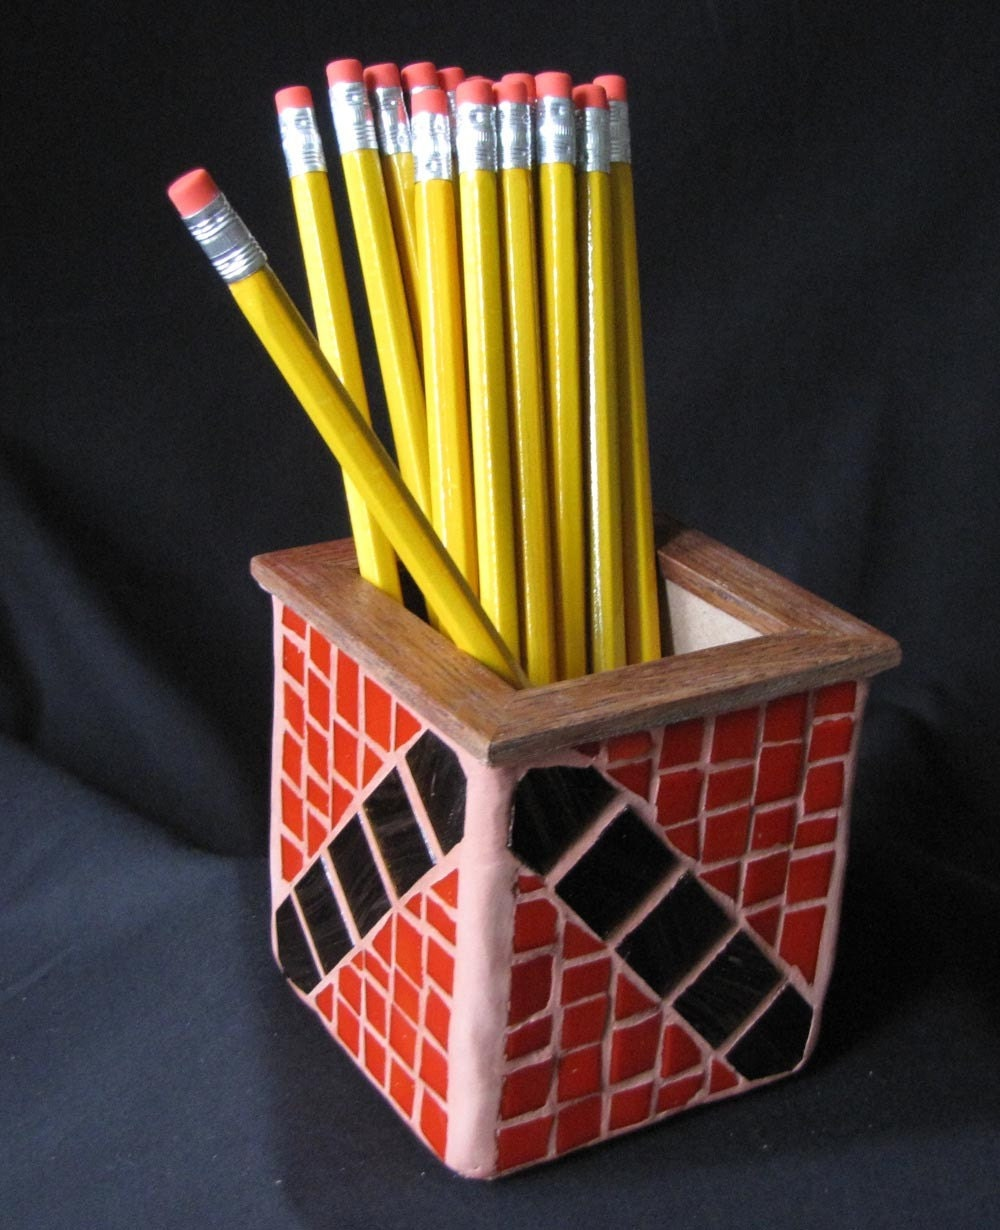 Mosaic Pencil Holder Desk Accessory By Mosaicillusions On Etsy